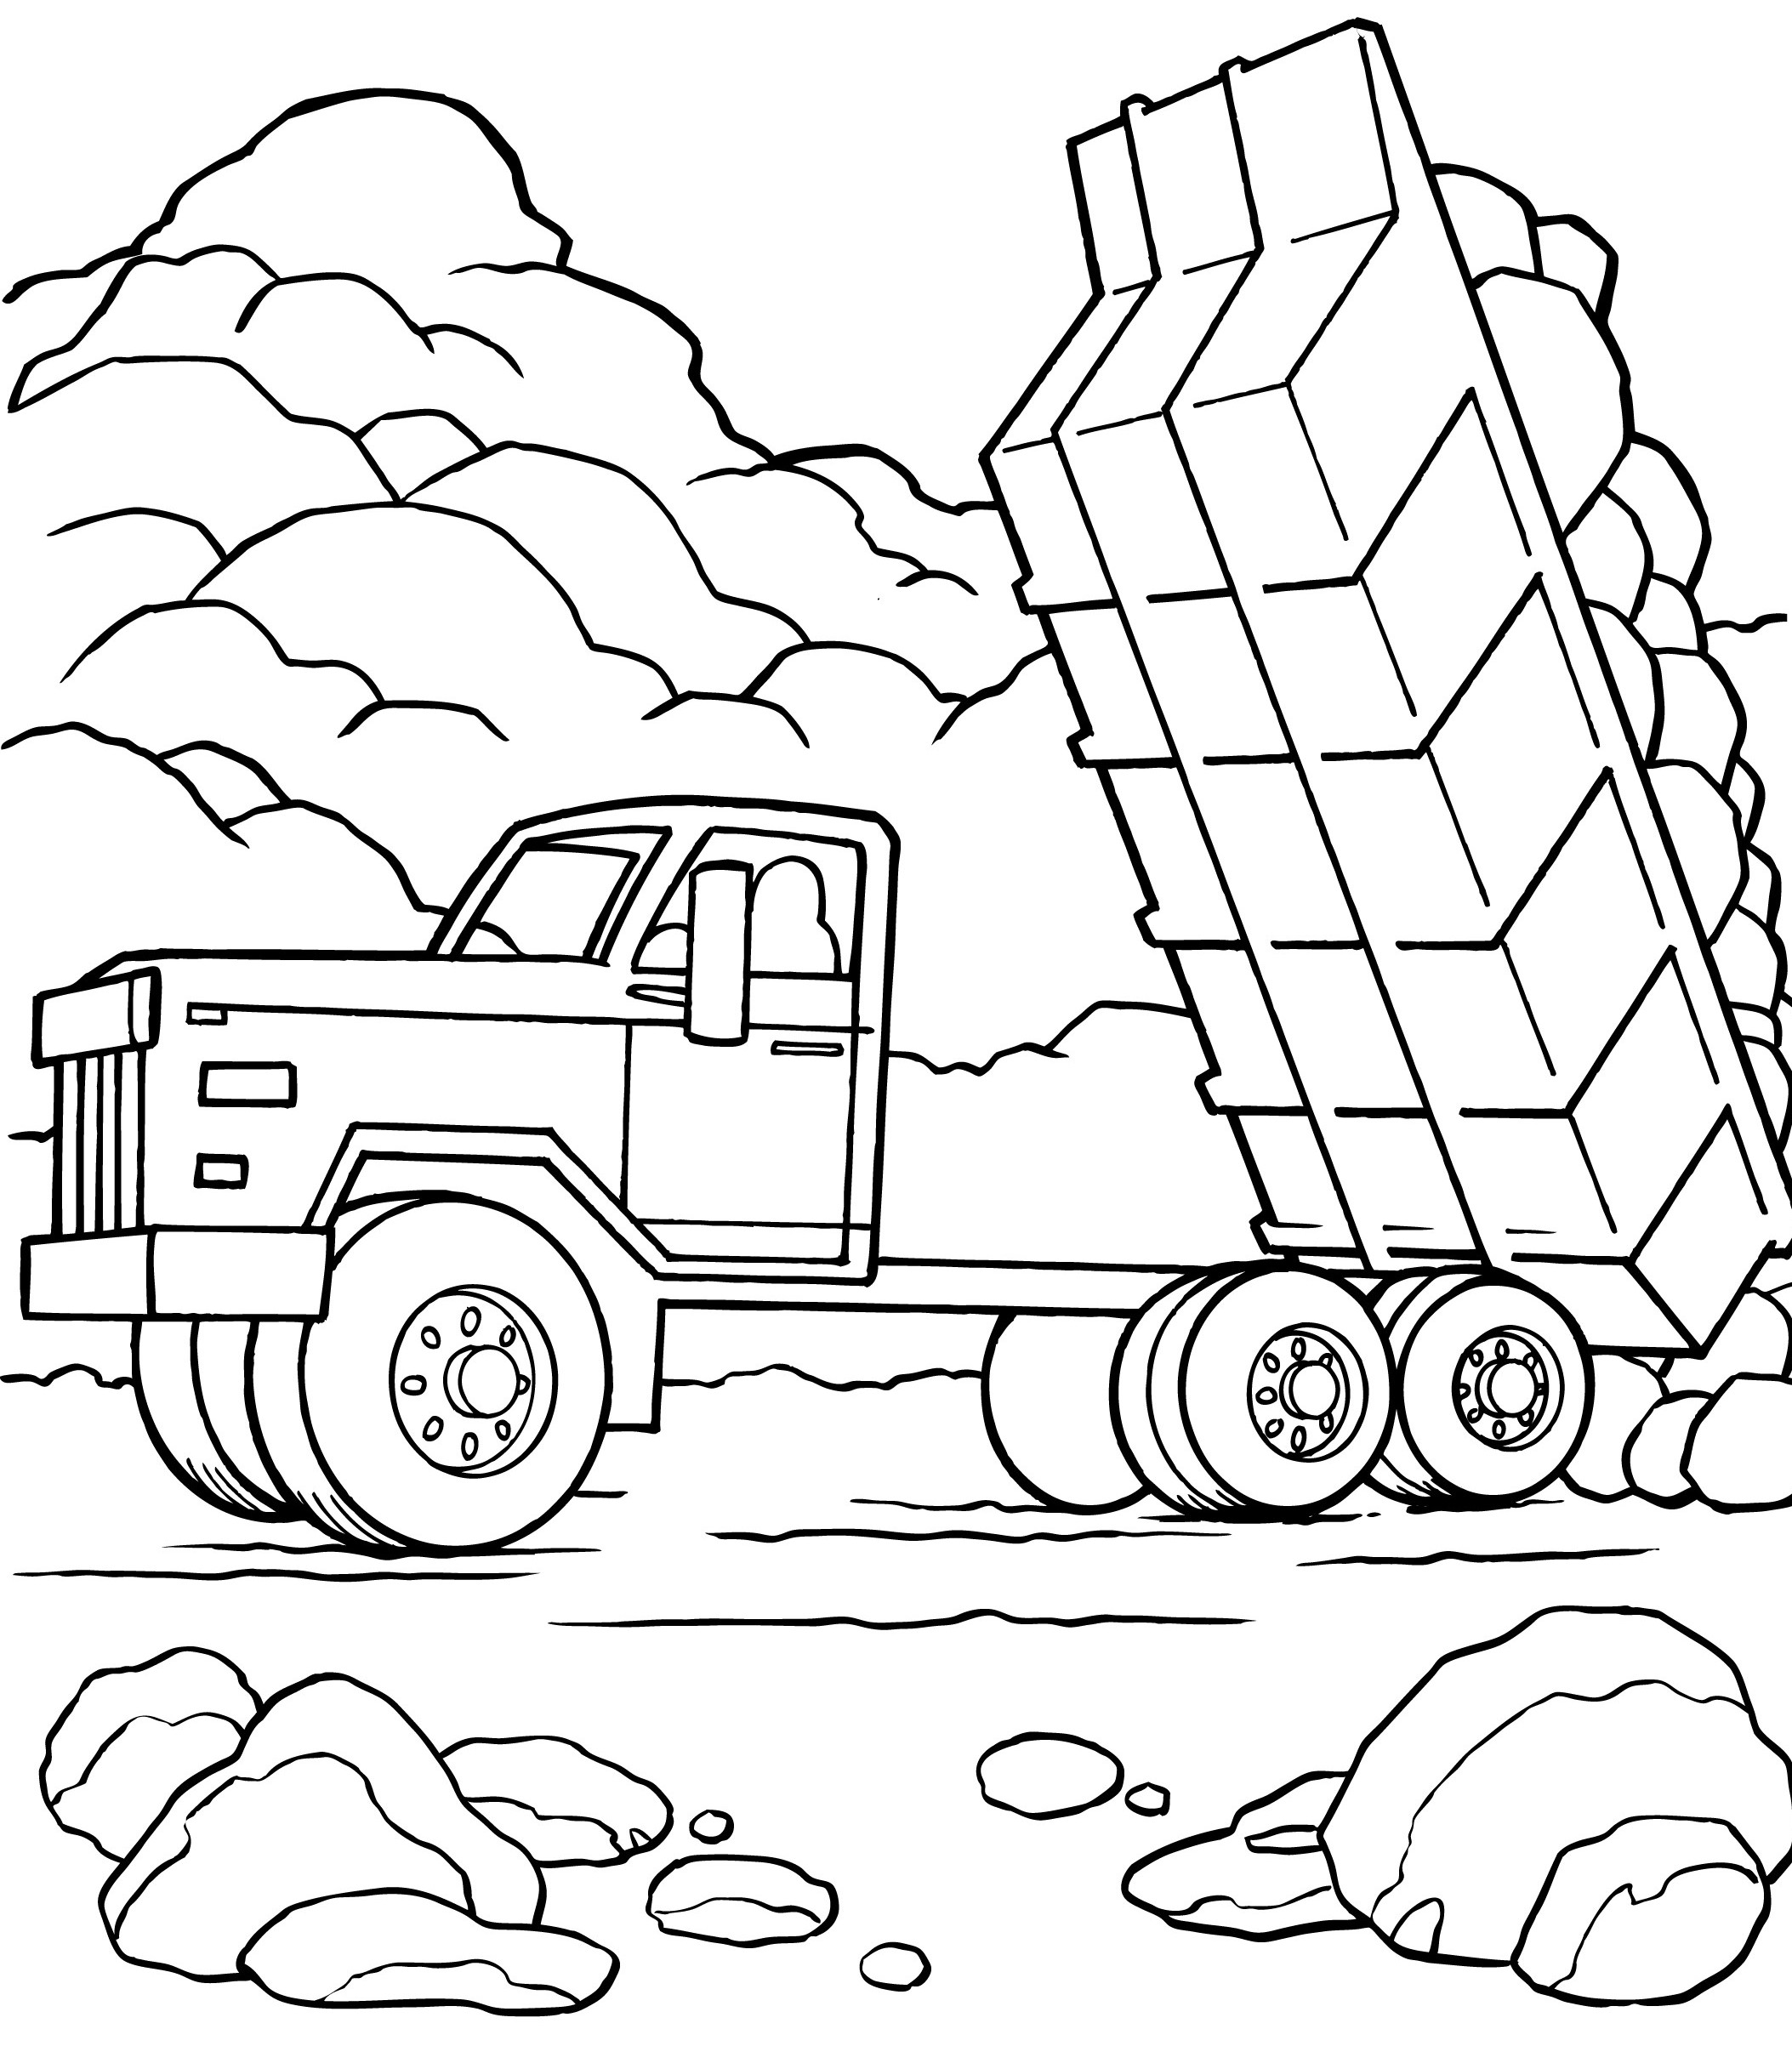 Coloriage camion am ricain imprimer - Dessin camion americain ...